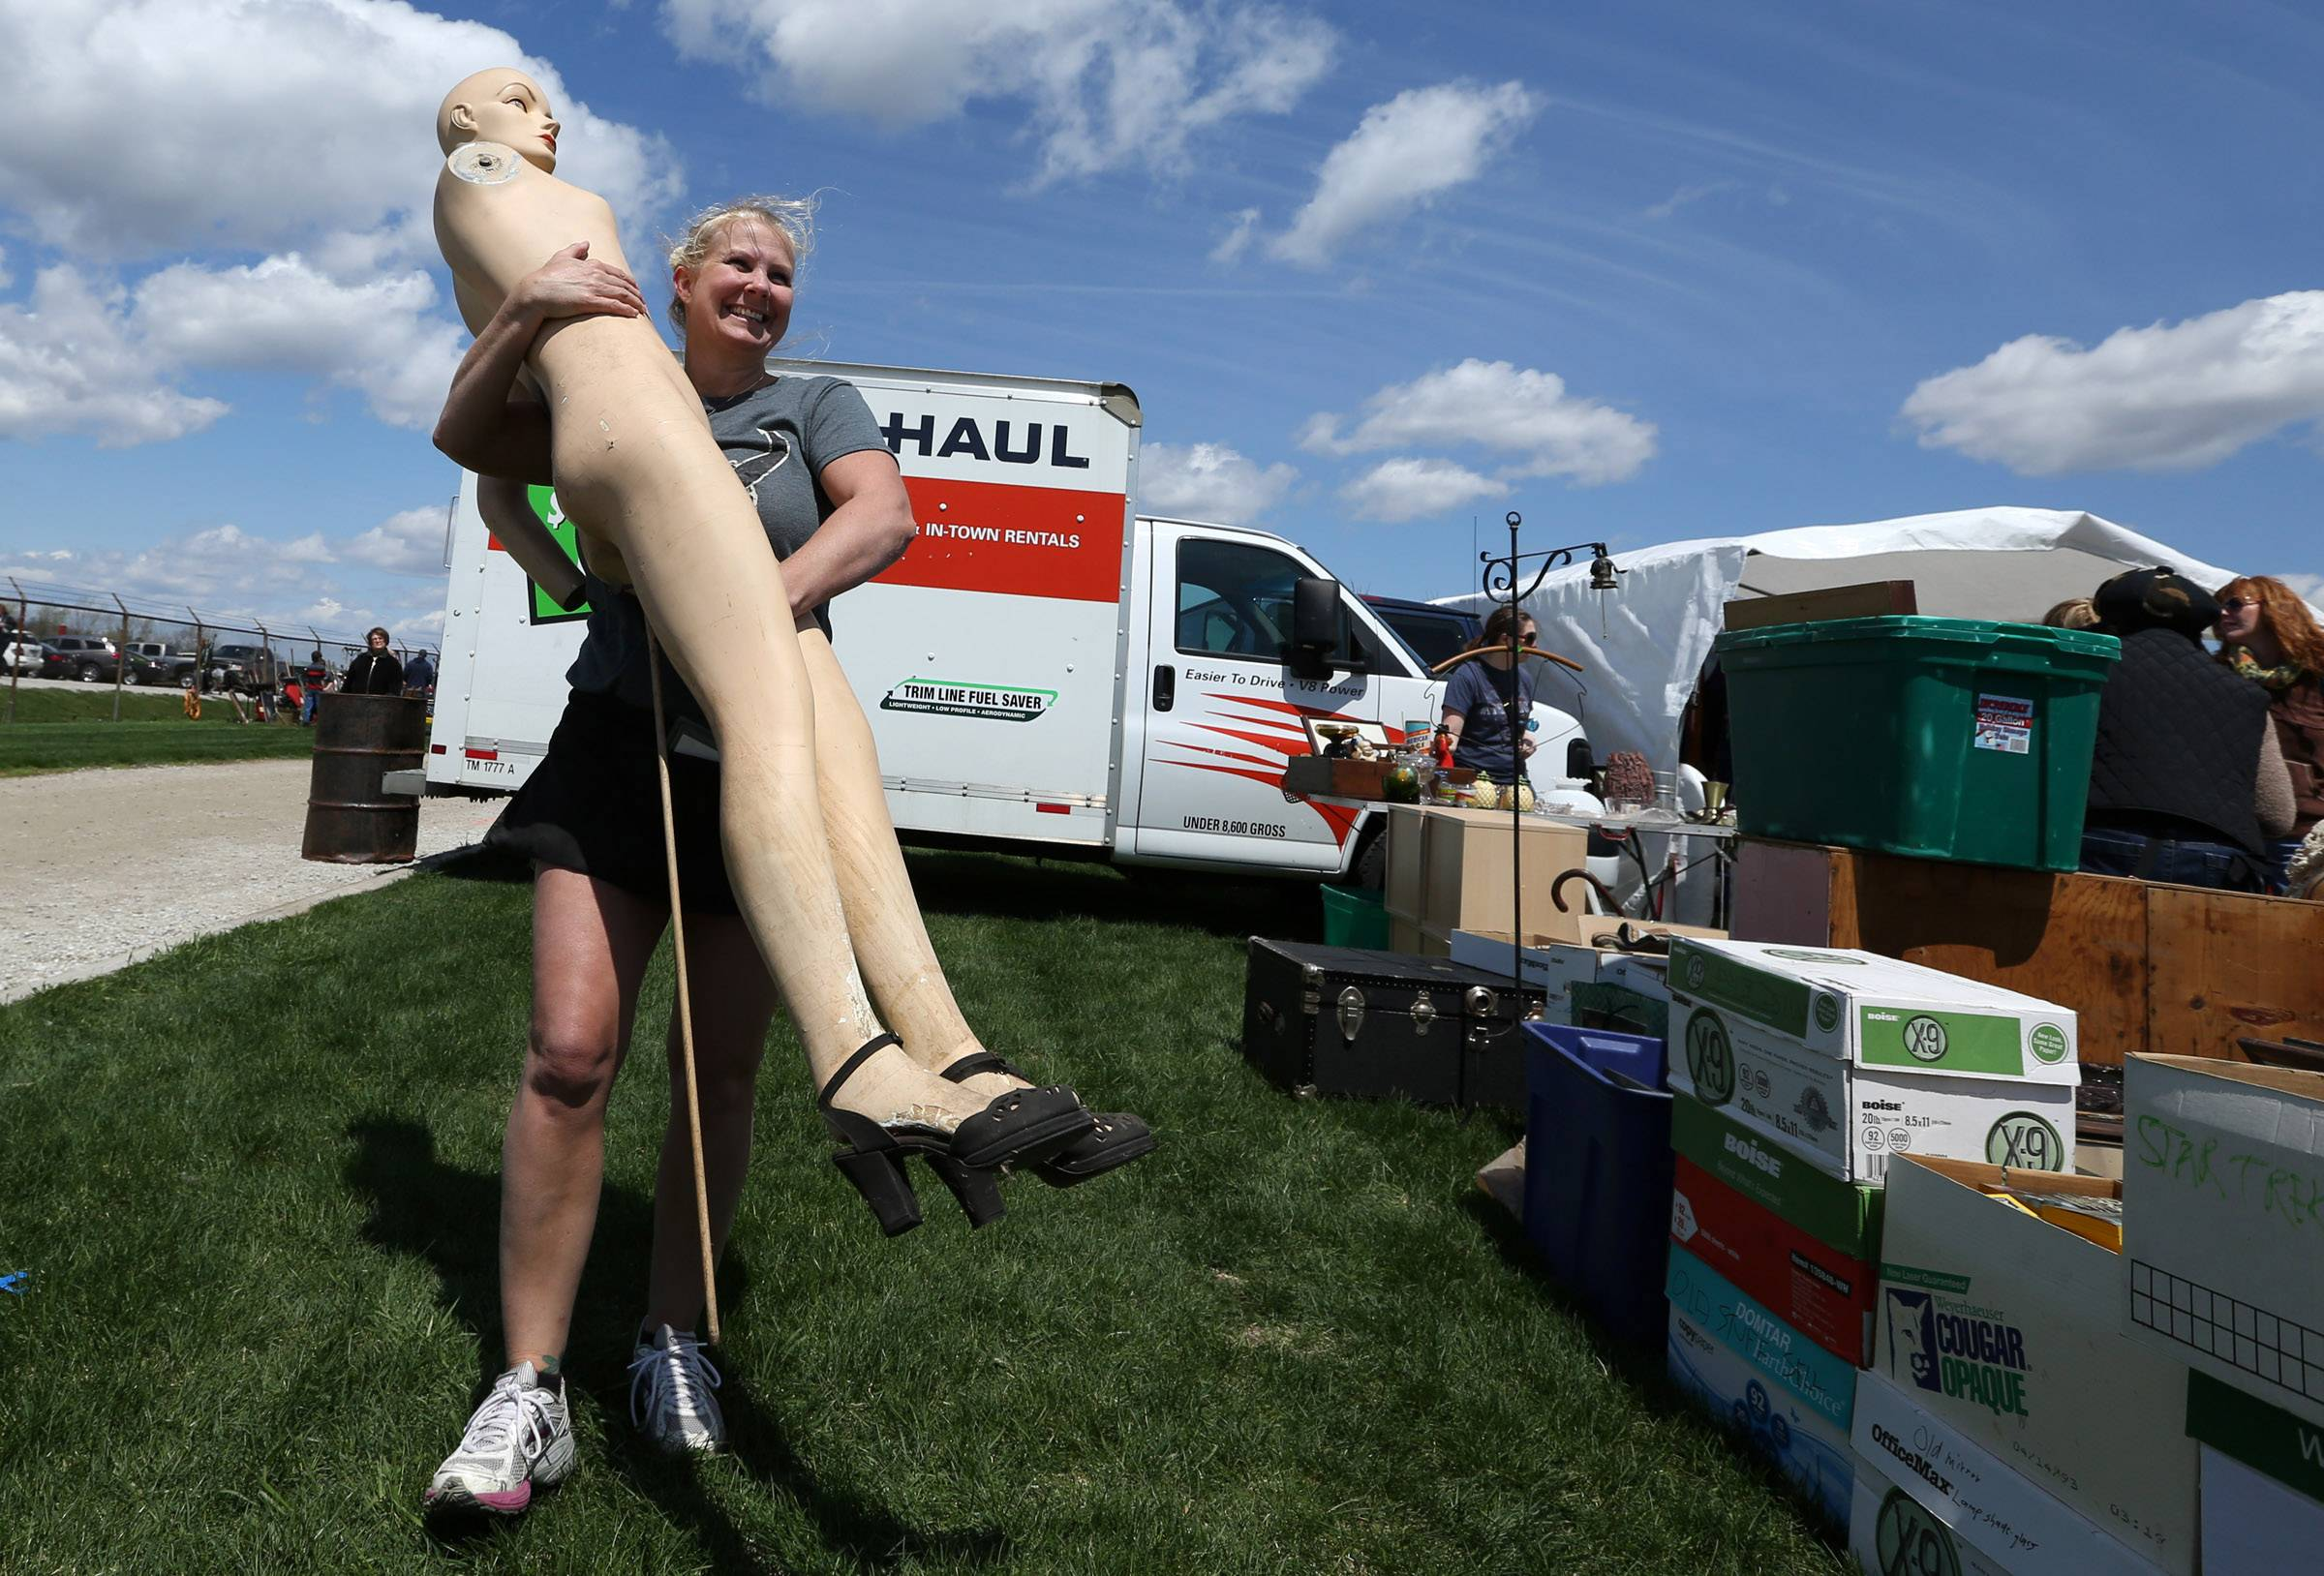 Cheri Blockinger, of Naperville, puts a mannequin in place just before noon when the Kane County Flea Market at the fairgrounds opened on Saturday in St. Charles.